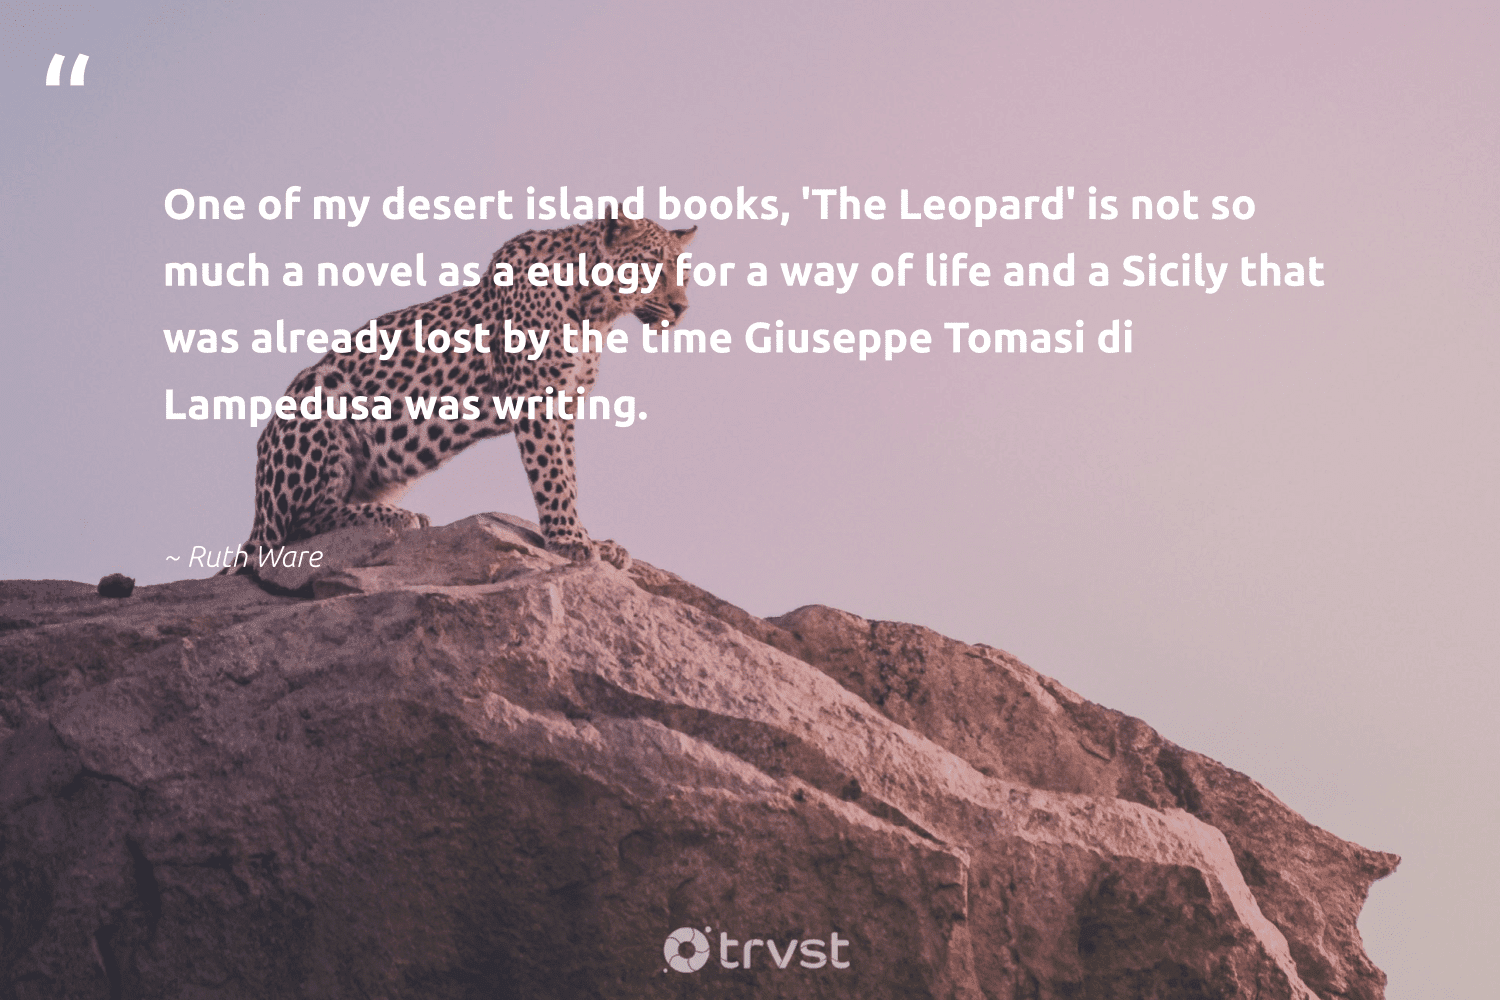 """""""One of my desert island books, 'The Leopard' is not so much a novel as a eulogy for a way of life and a Sicily that was already lost by the time Giuseppe Tomasi di Lampedusa was writing.""""  - Ruth Ware #trvst #quotes #leopard #life #wildlifeprotection #dosomething #nature #planetearthfirst #big5 #thinkgreen #conservation #beinspired"""